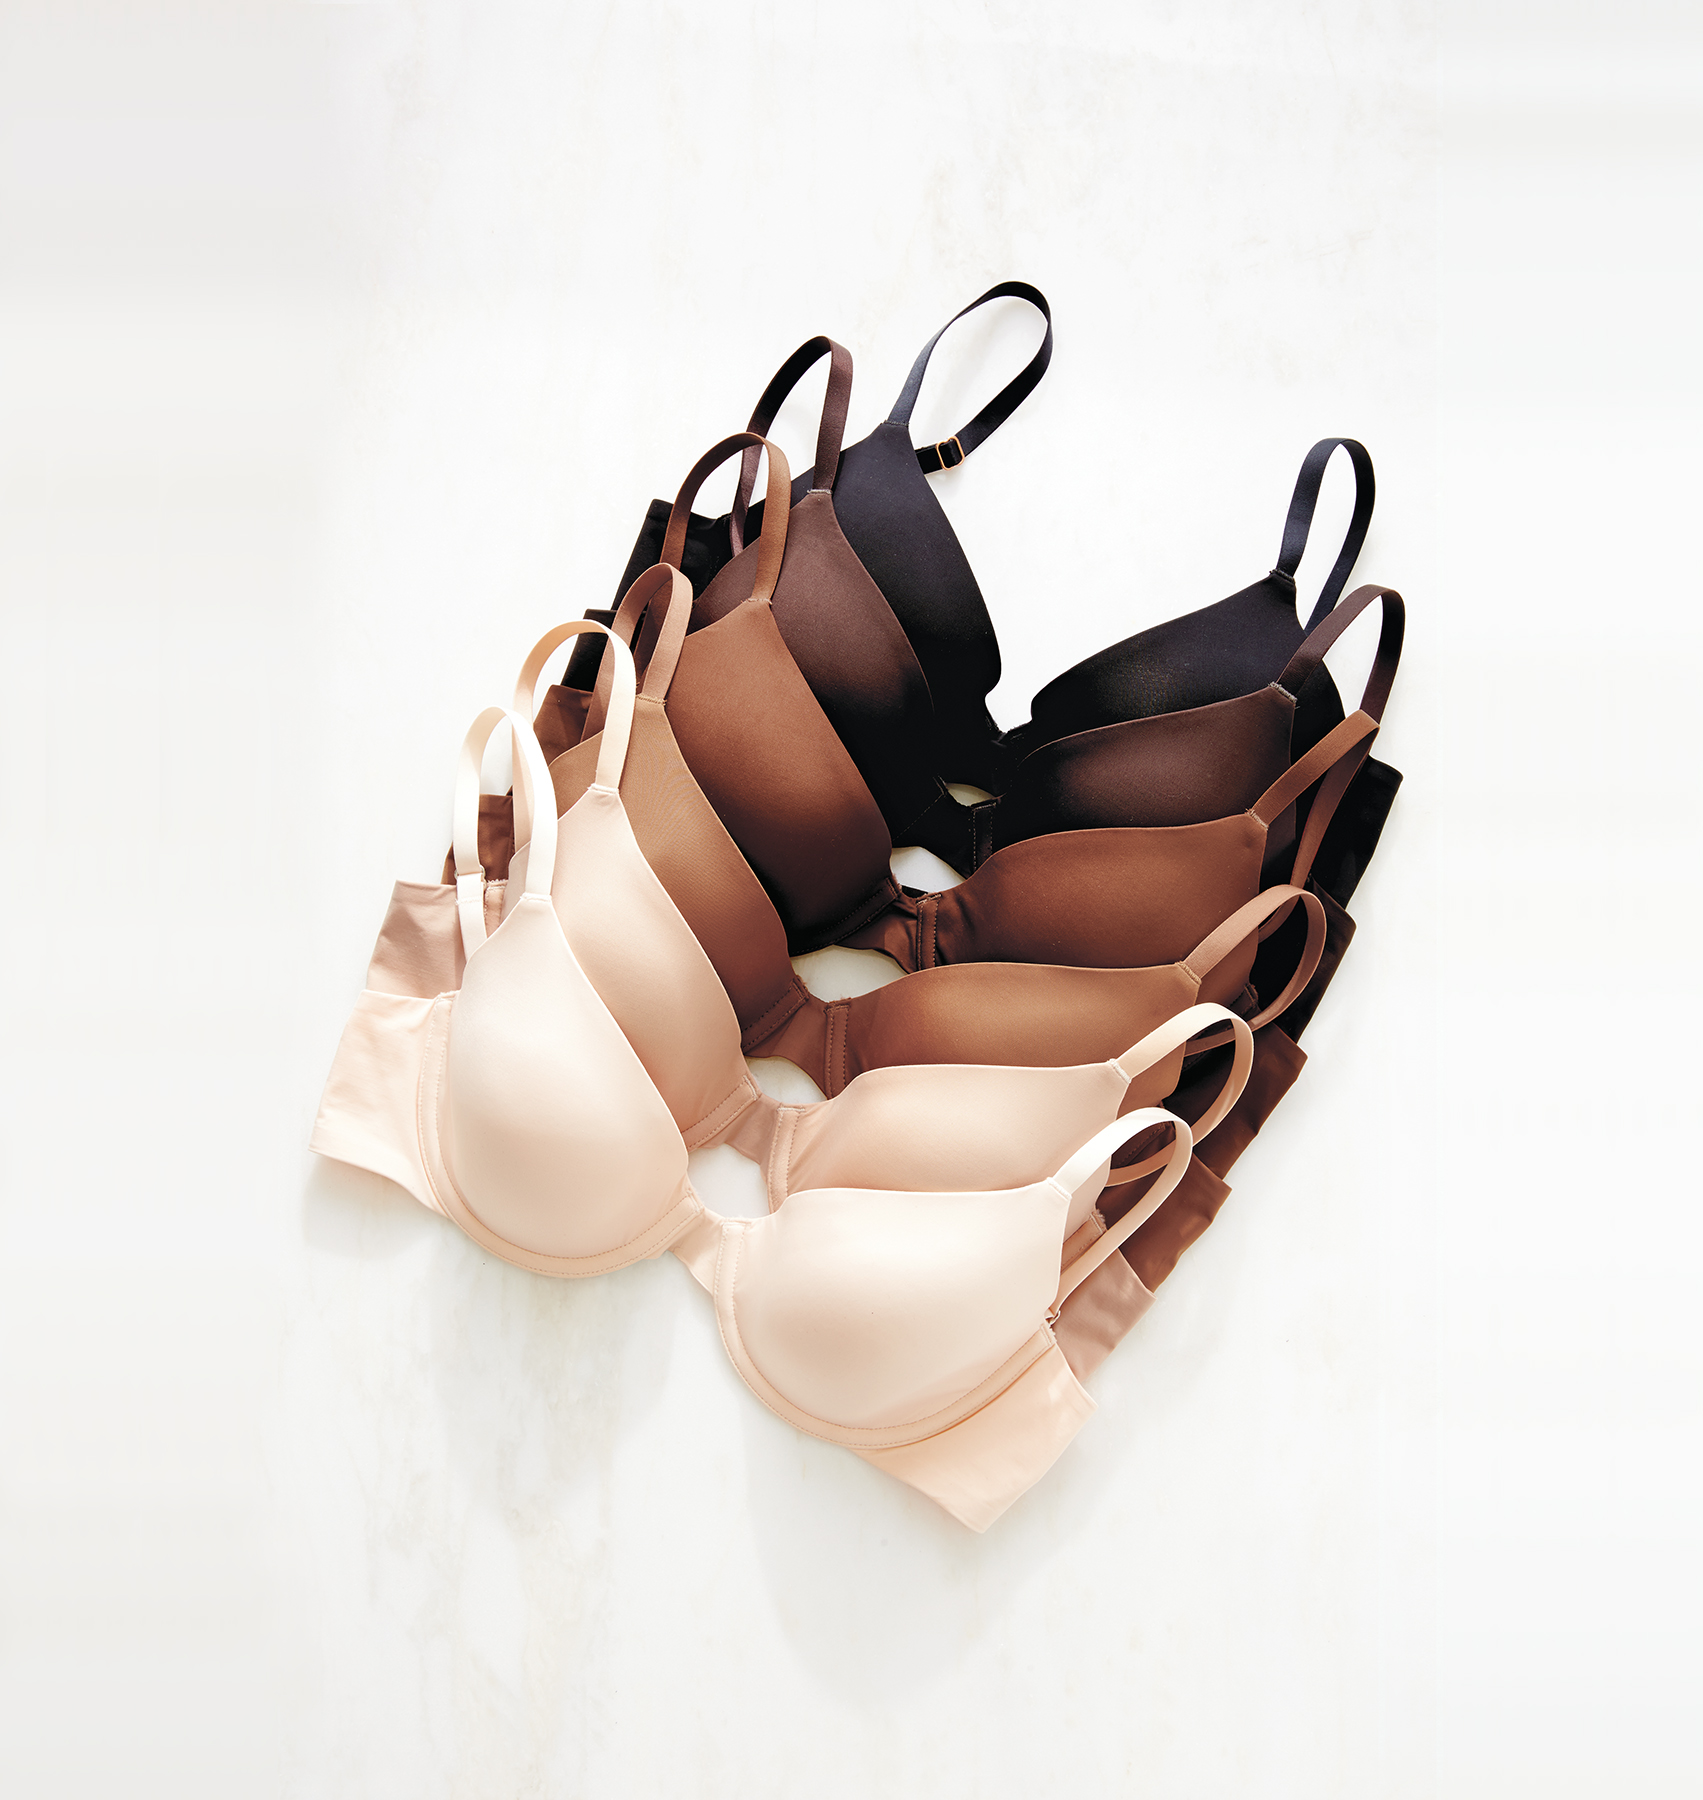 Nude bras in all skin tones